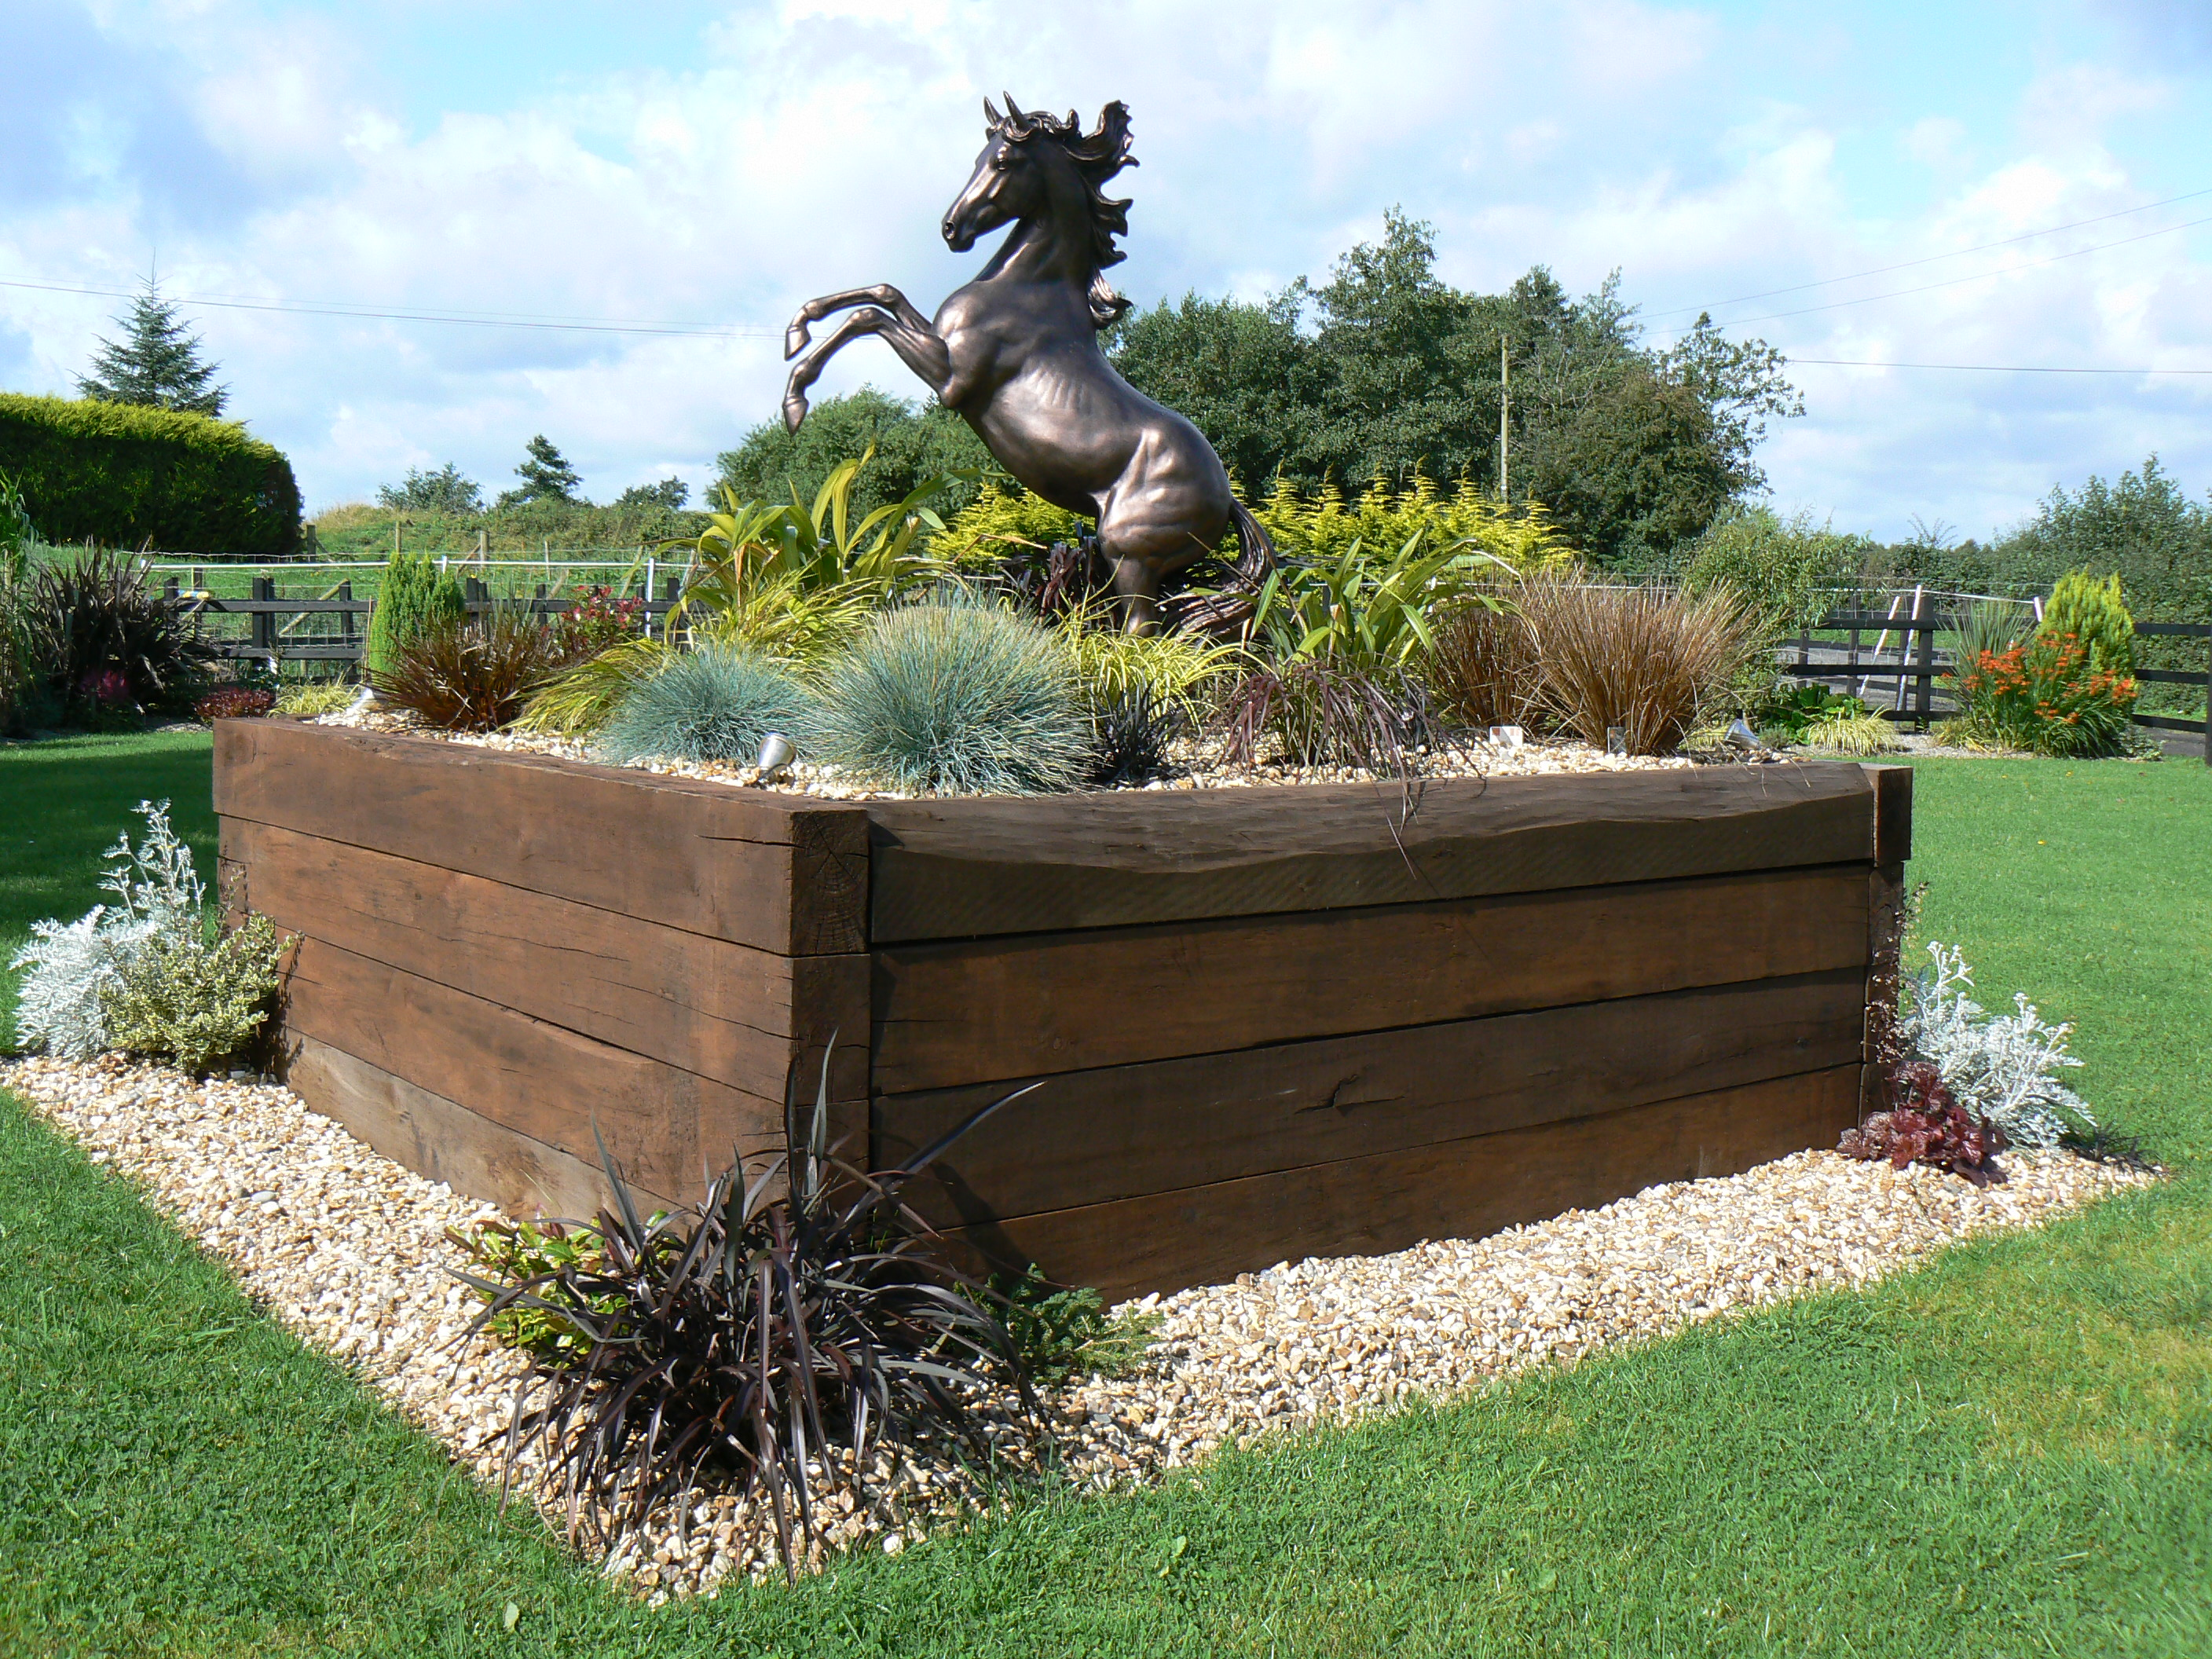 Using Railway Sleepers For Raised Vegetable Beds Sleepers The Strata Group Railway Sleepers Solid Fuels